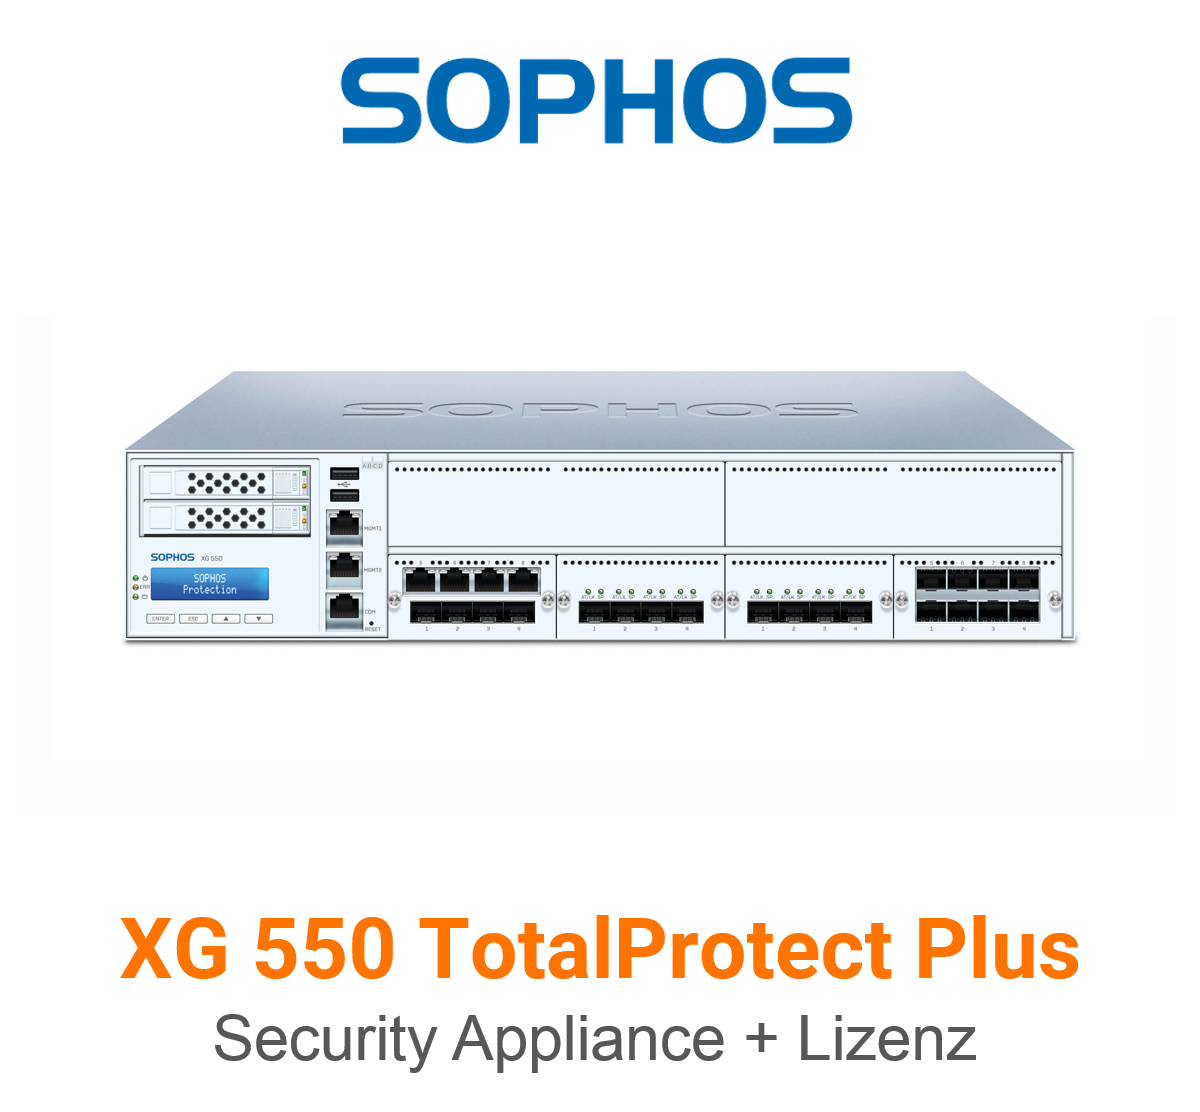 Sophos XG 550 TotalProtect Plus Bundle (Hardware + Lizenz)